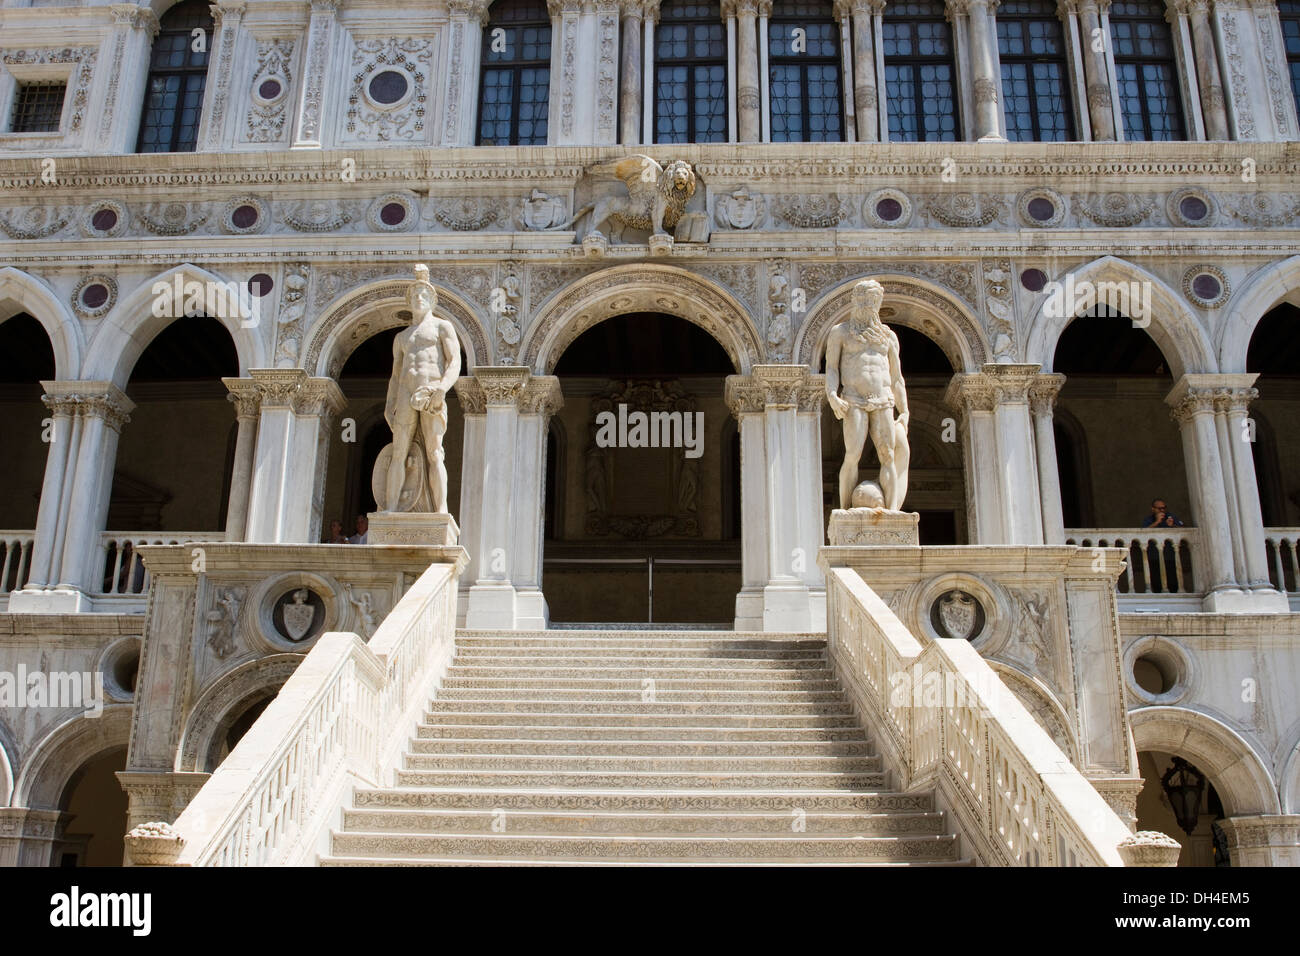 The Giant's Staircase in the Doge's Palace (Palazzo Ducale